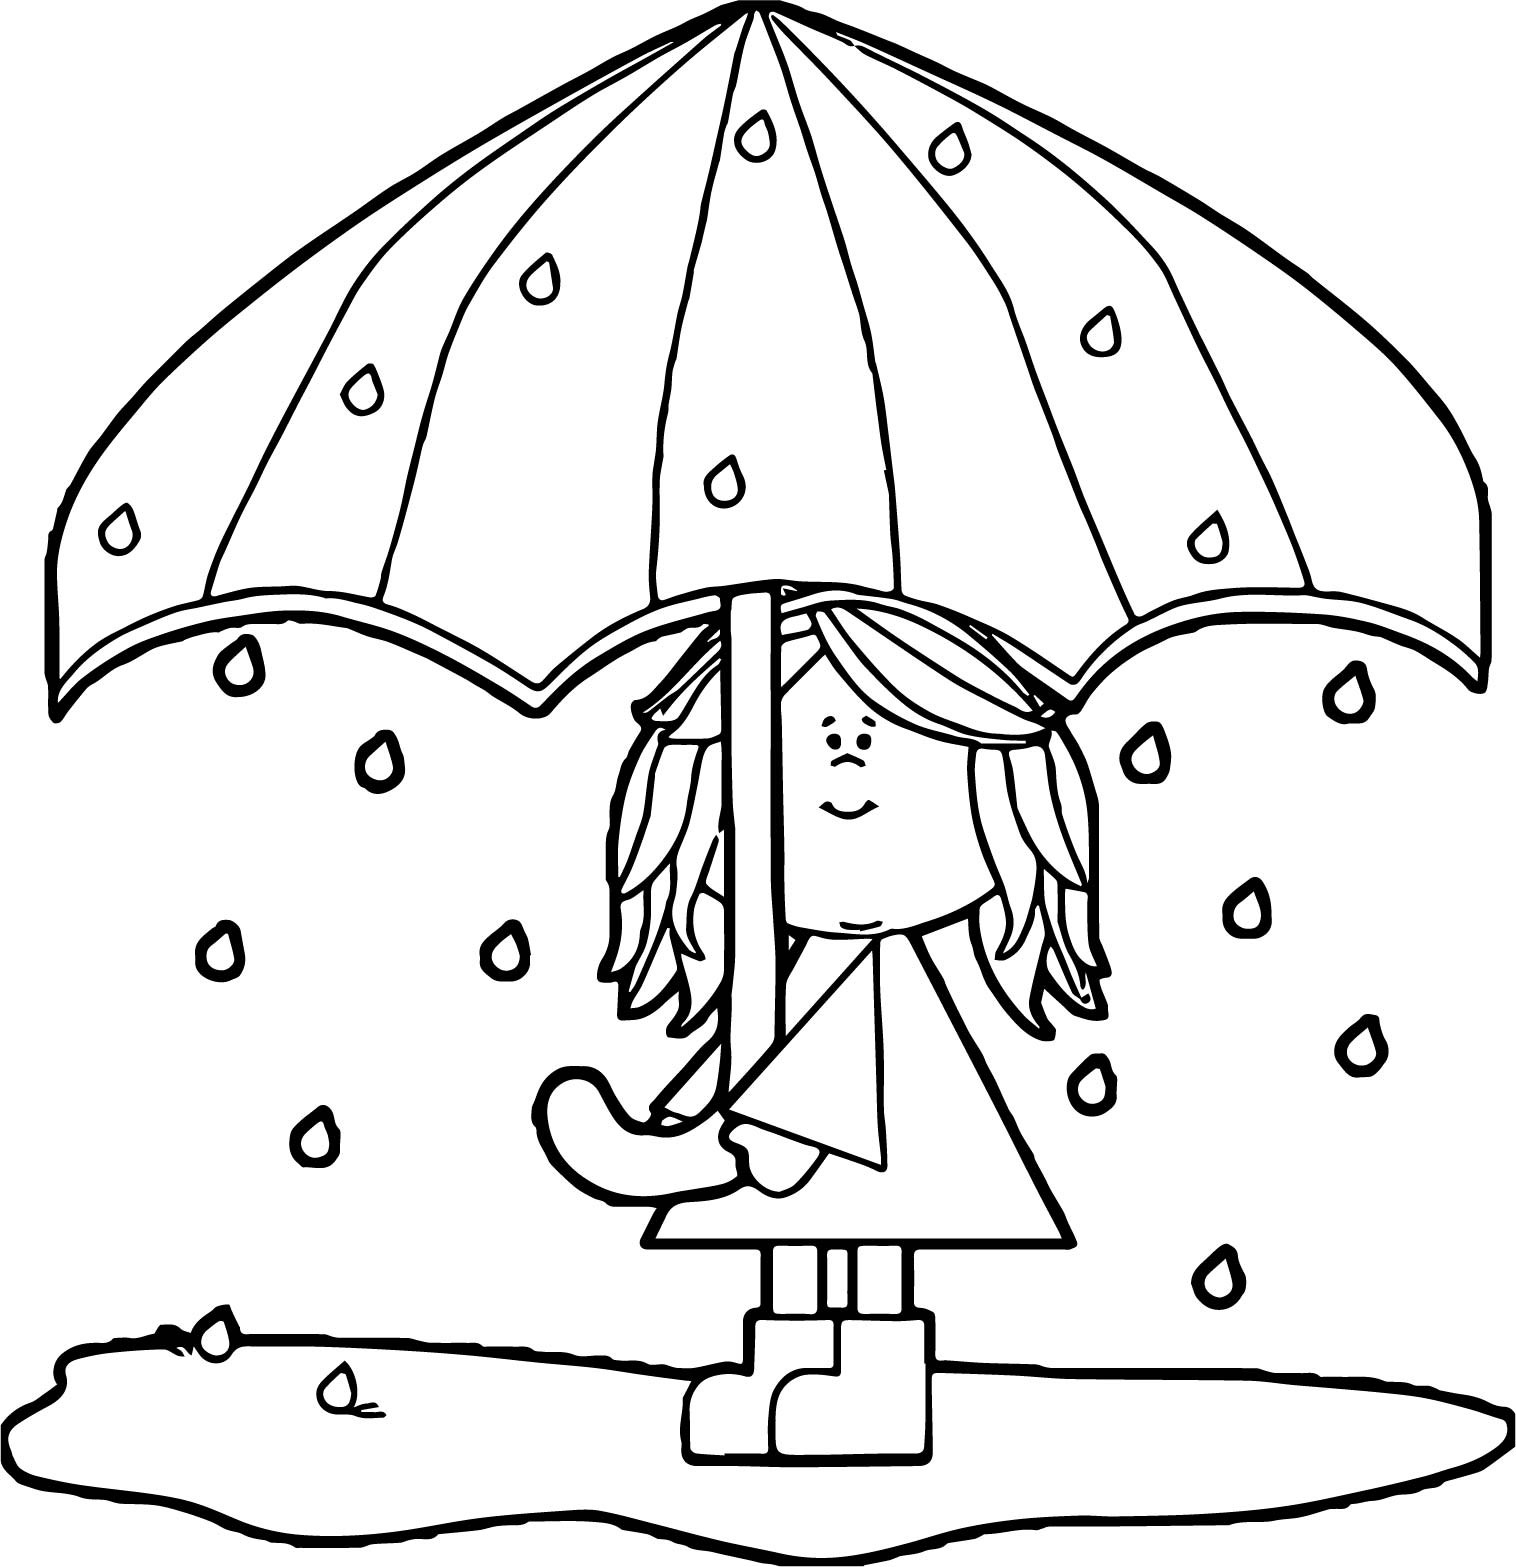 1516x1567 Mary Mary Quite Contrary Nursery Rhyme Coloring Page Download